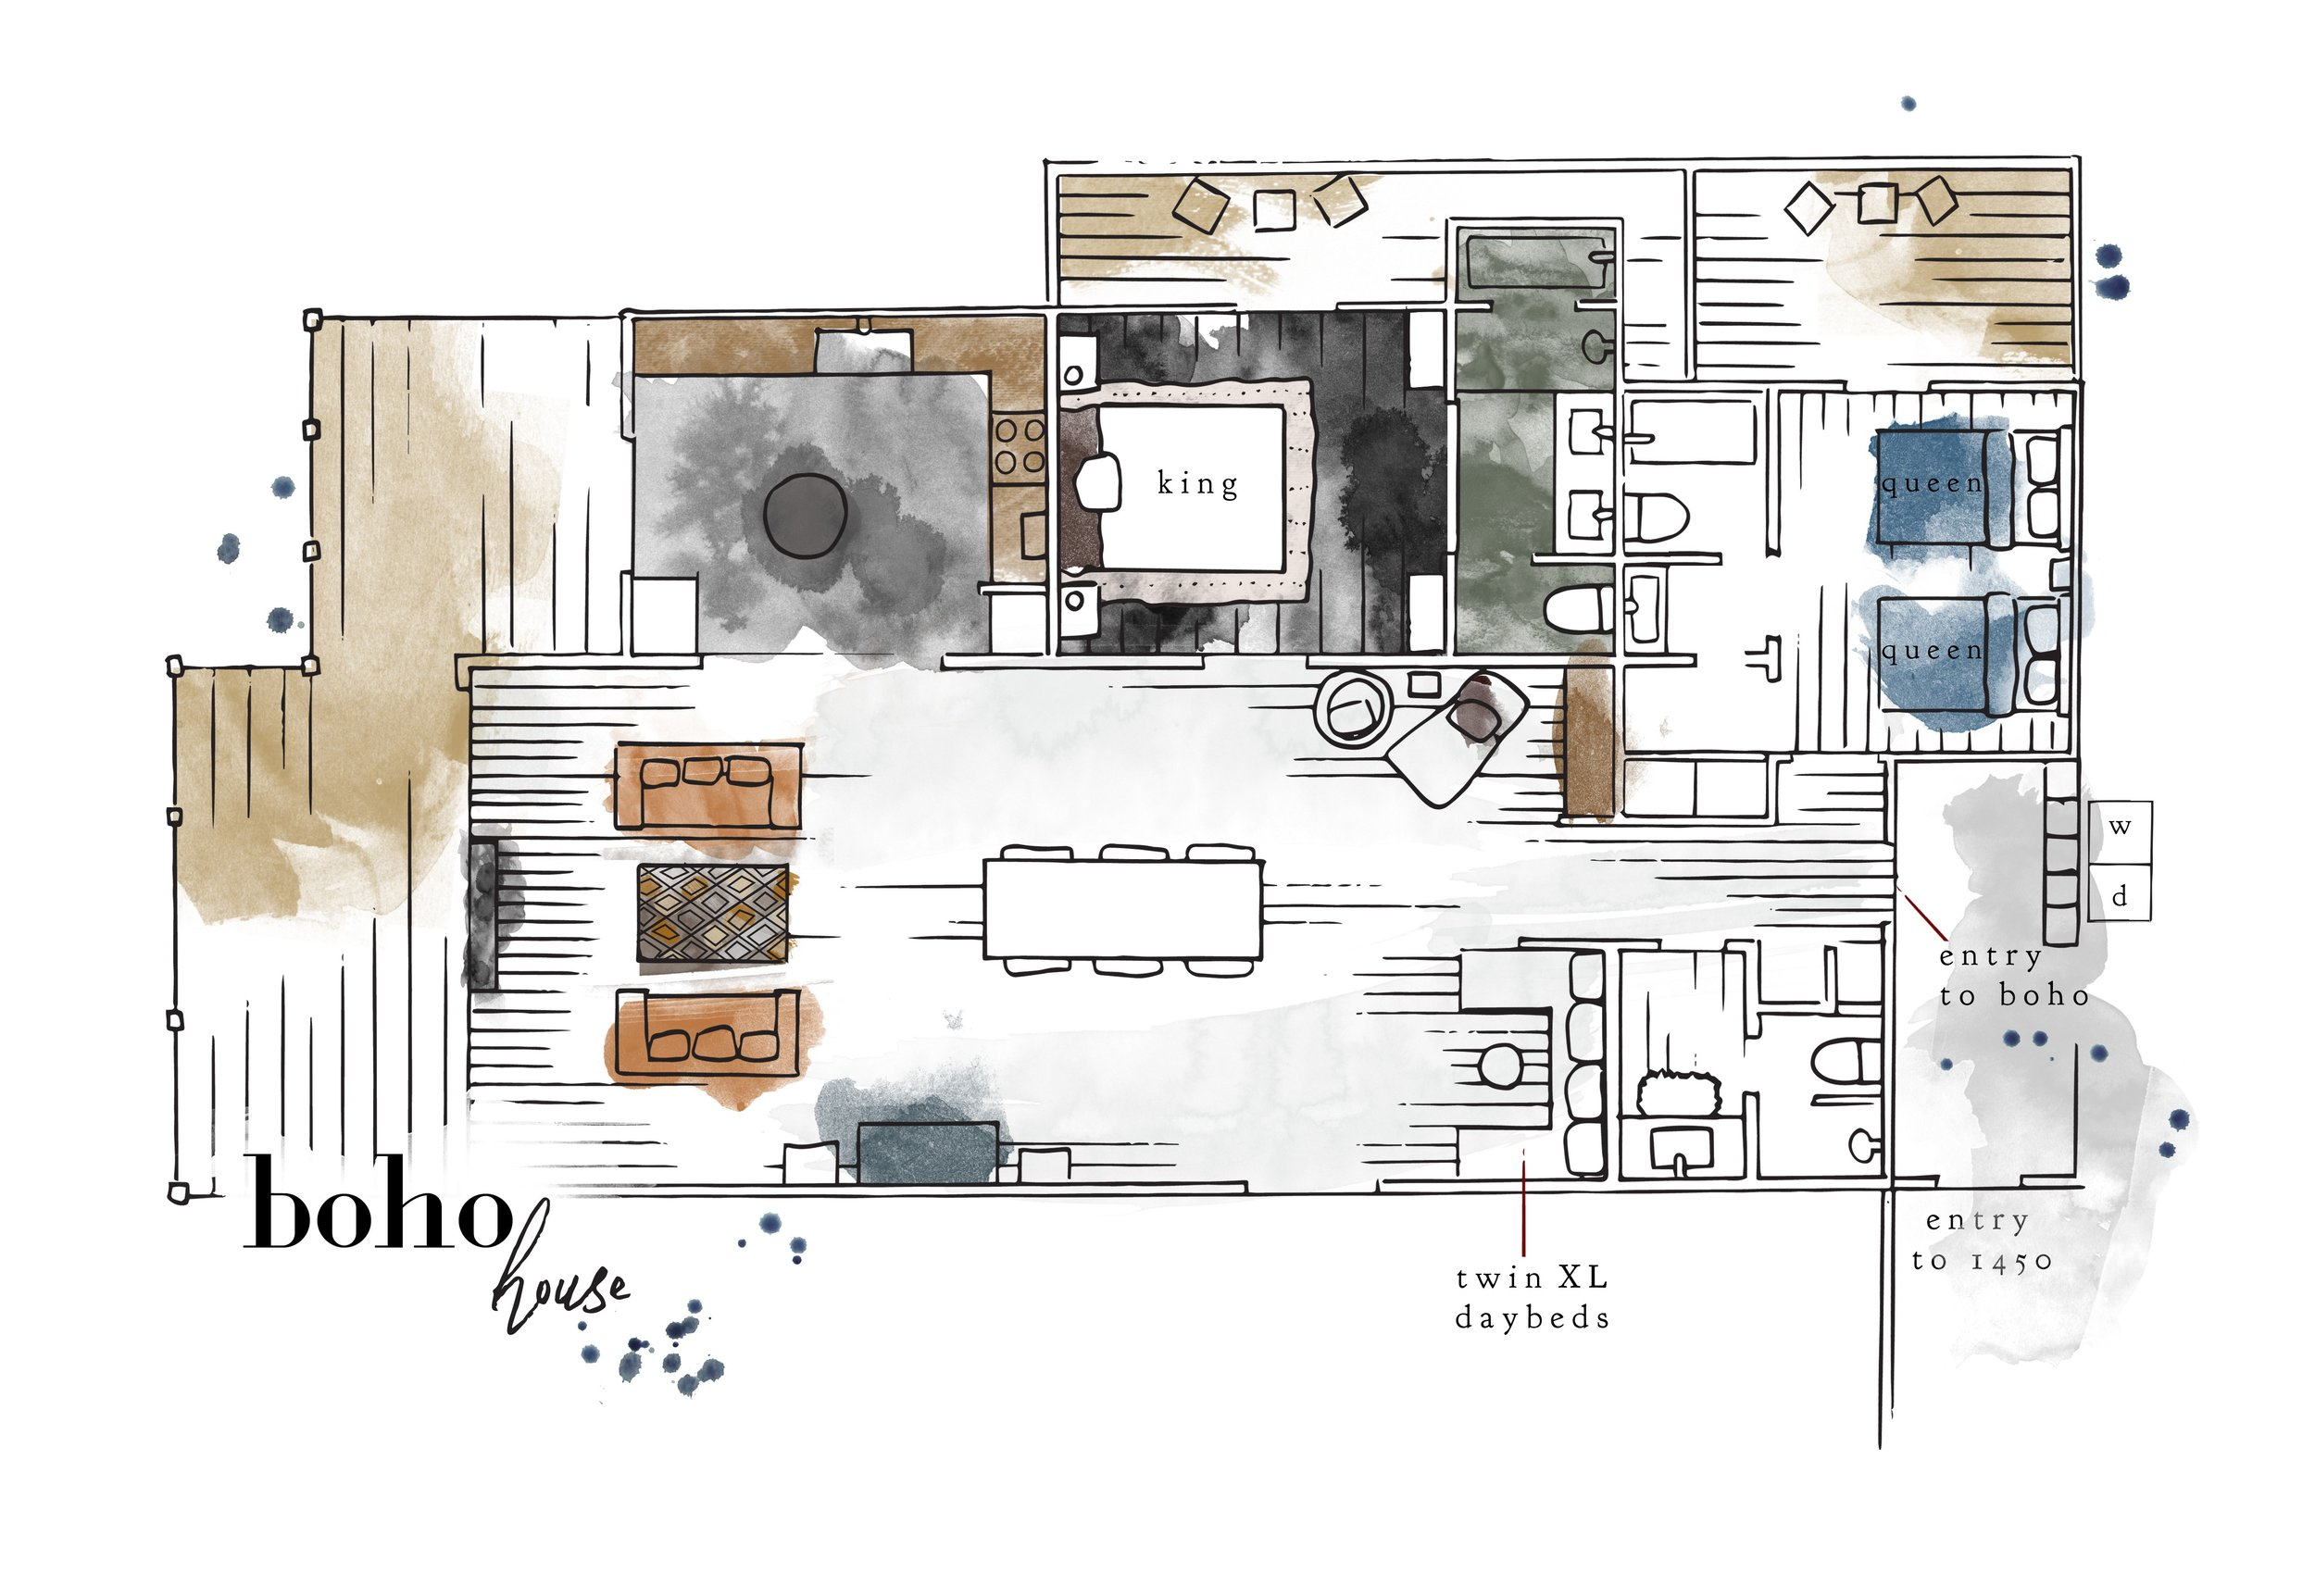 Boho cottage layout.jpg